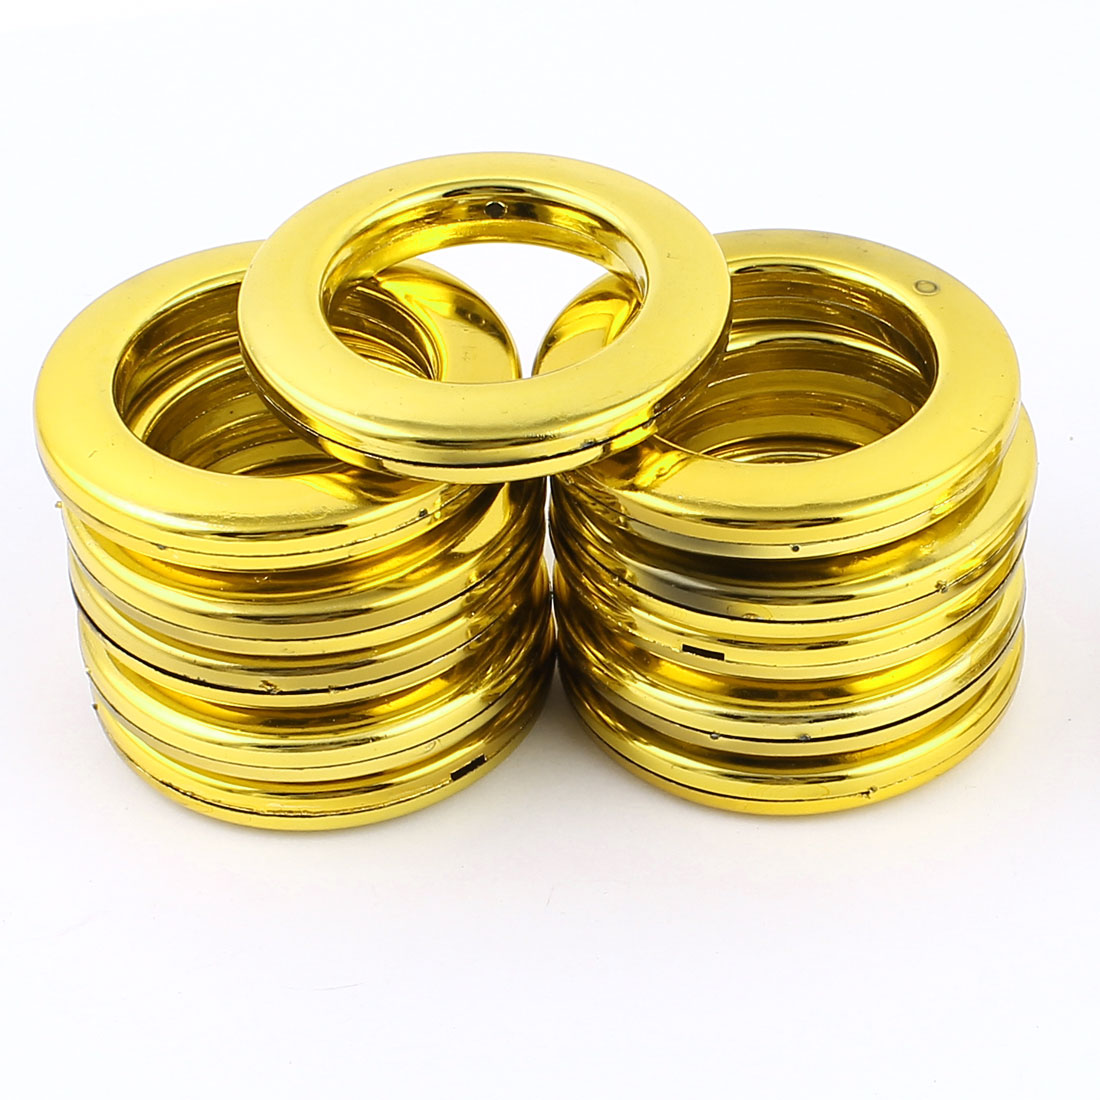 12 Pieces Gold Tone Round Shaped Window Curtain Rings 41mm Inner Dia